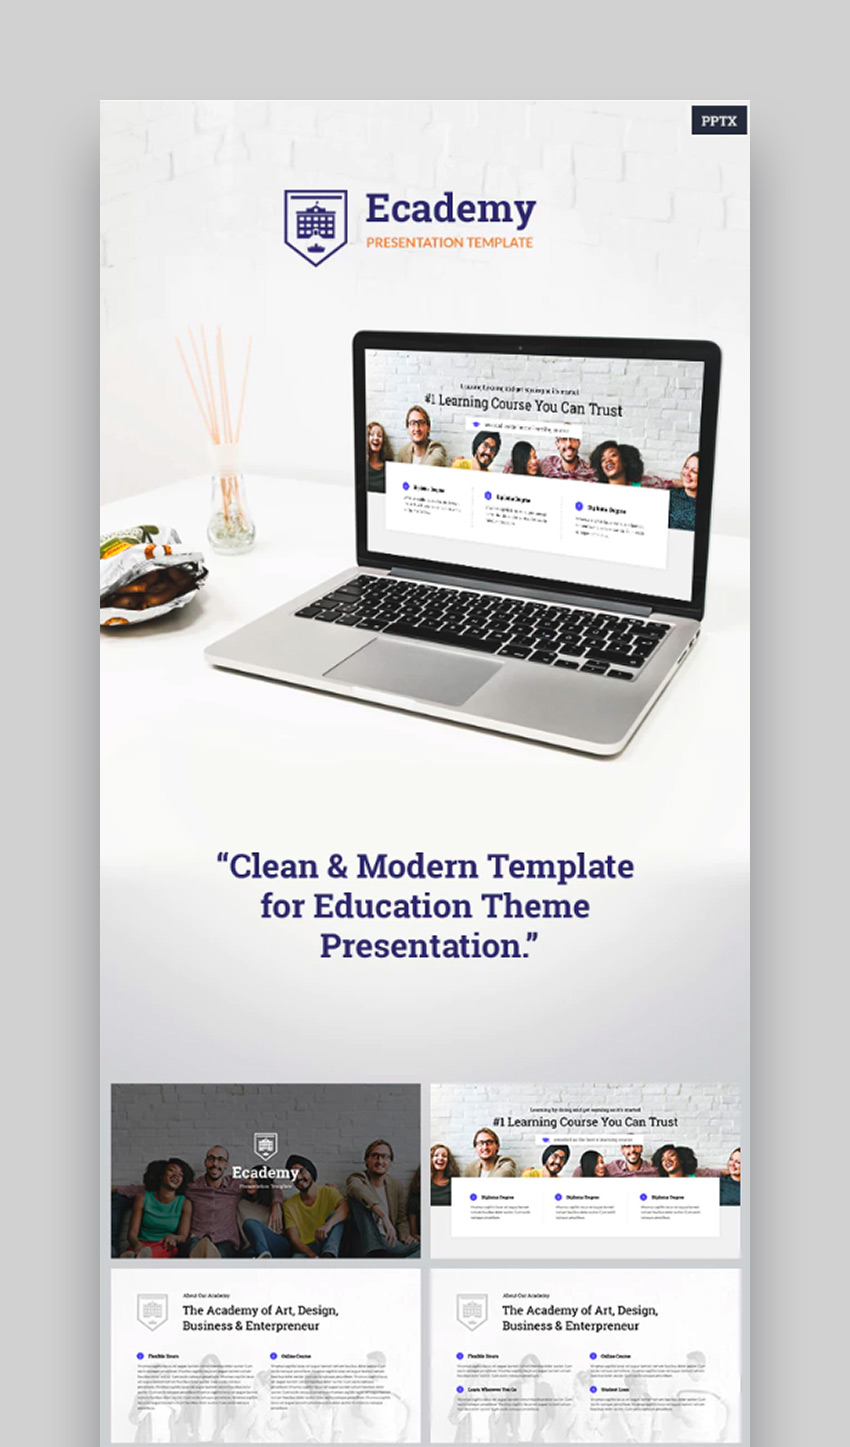 25 Education PowerPoint Templates - For Great School